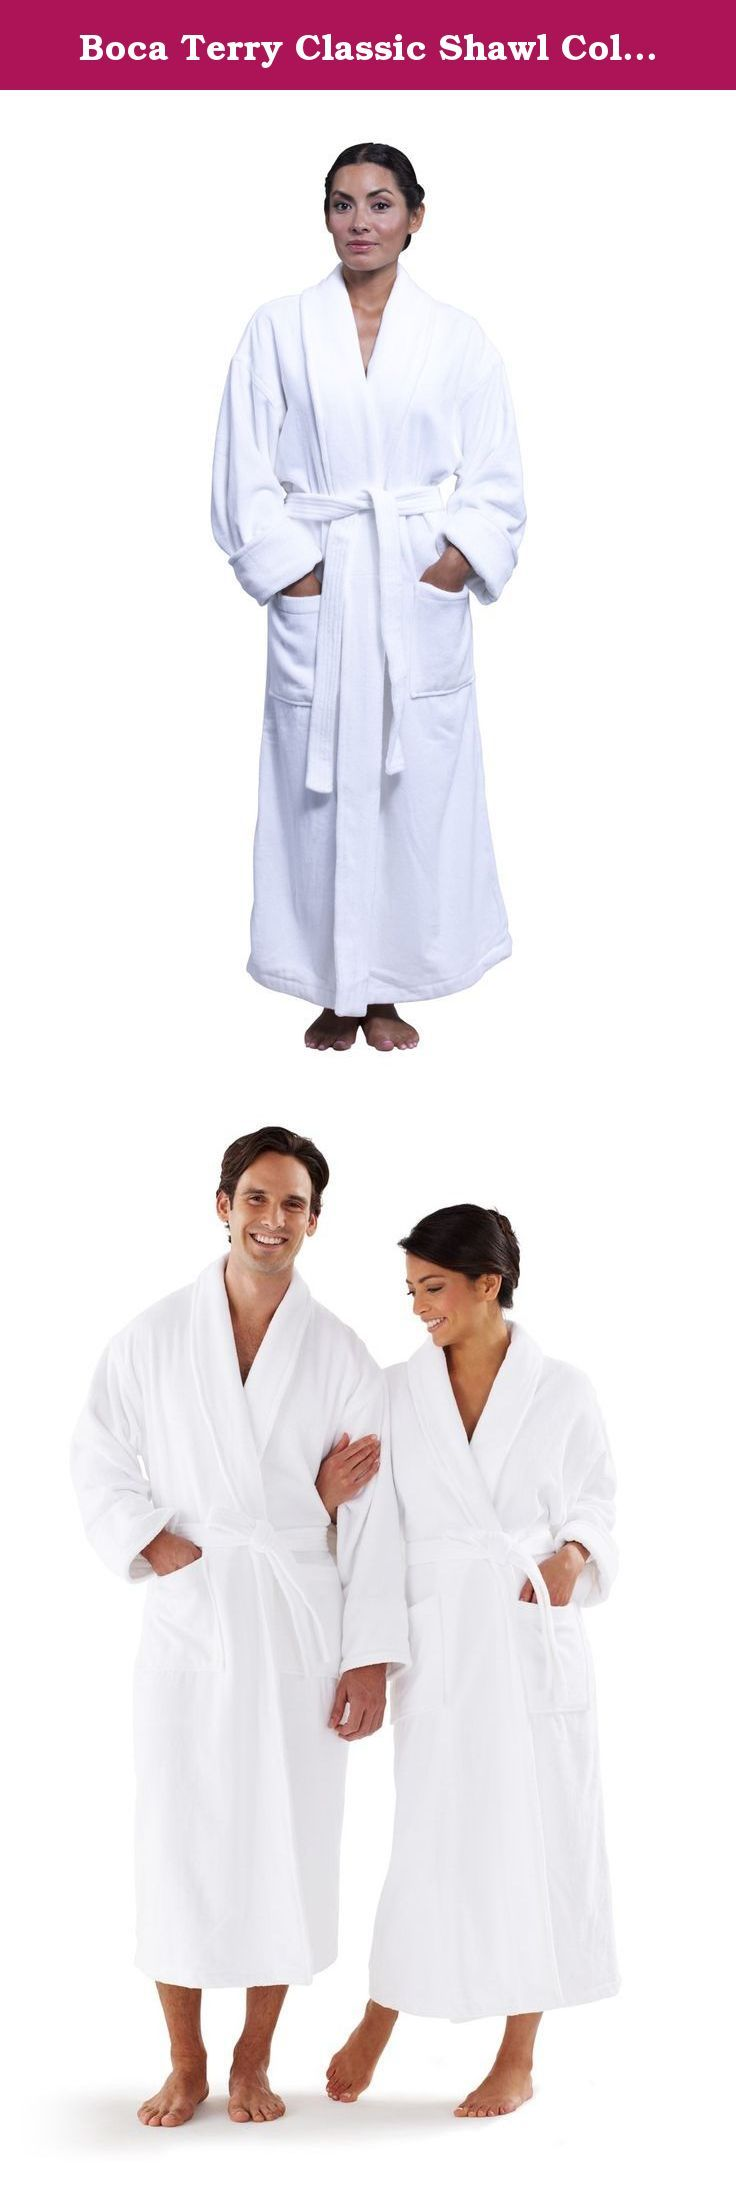 Boca Terry Classic Shawl Collar Bathrobe White 14oz Velour XX-Large - Unisex. The shawl collar robe is the most familiar bathrobe design. Terry bathrobes date from the Victorian era, when cloth as soft and absorbent as terry was both expensive and difficult to manufacture. After completing a bath, the lady or gentleman donned a plush robe instead of drying off with a towel. The rolled collar and cuffs add just a bit of flair. Pockets offer plenty of space for your book, a bottle of lotion…